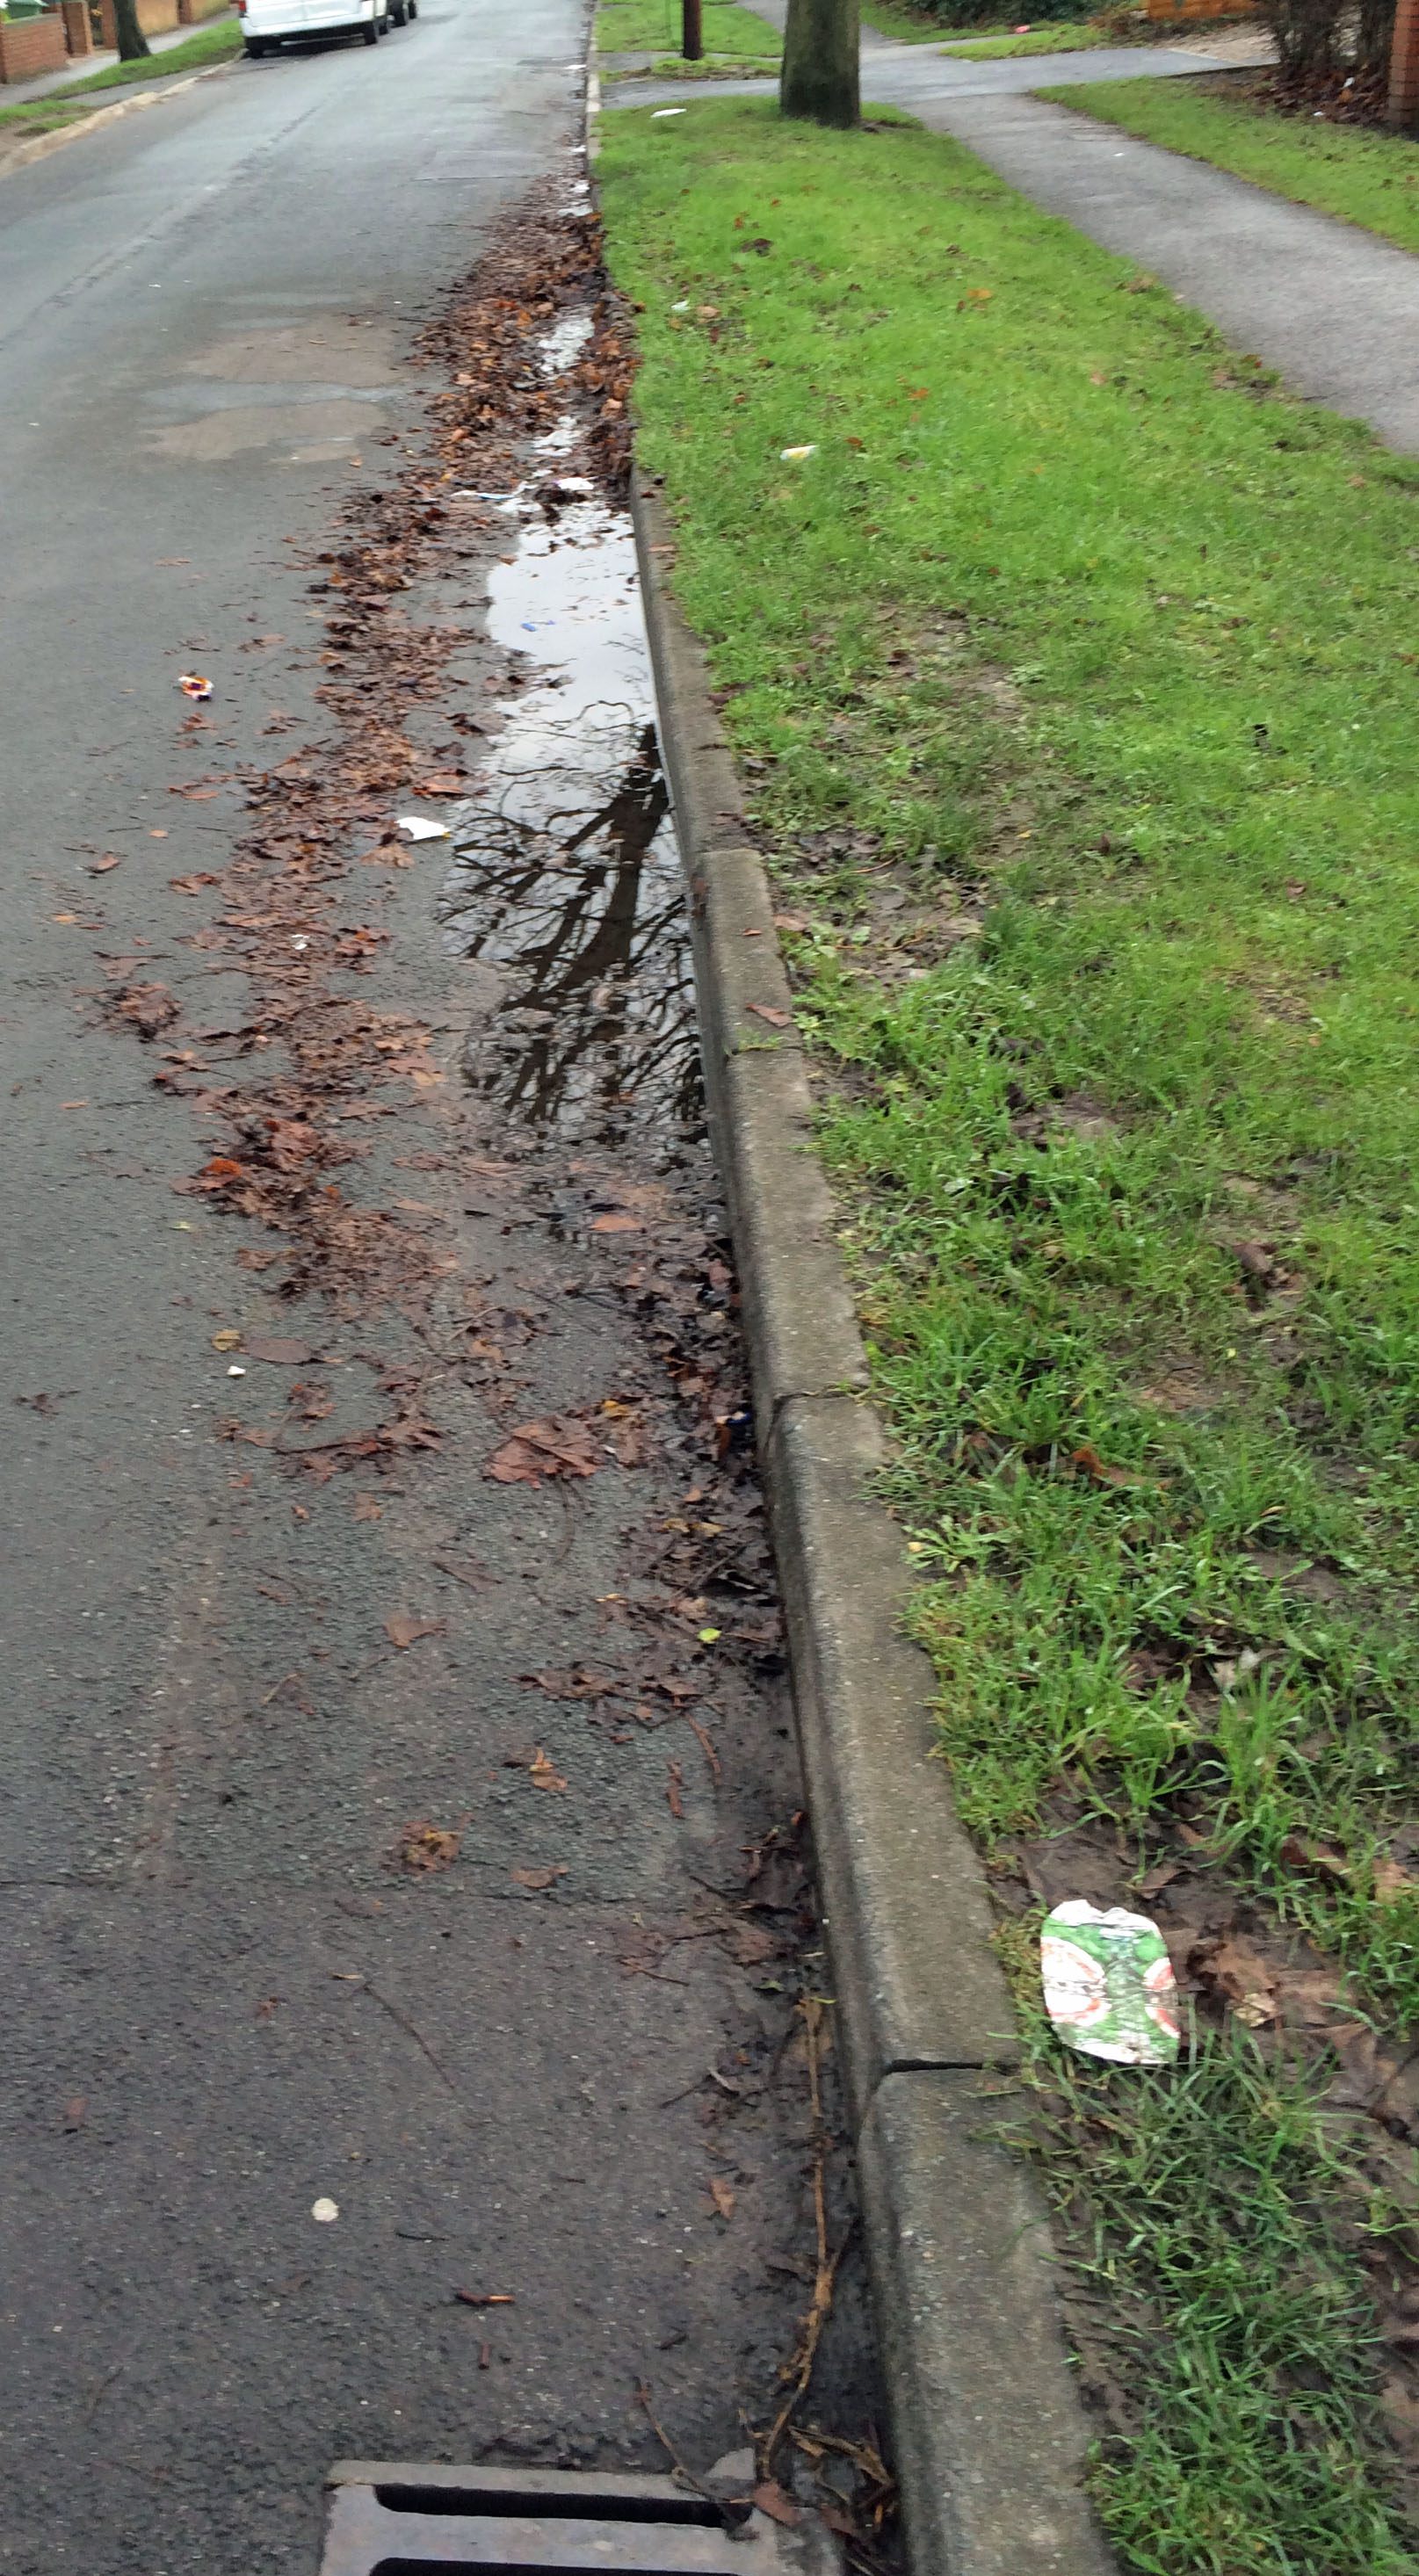 Leaf detritus on little Green Lane in Acomb - Was reported 3 weeks ago